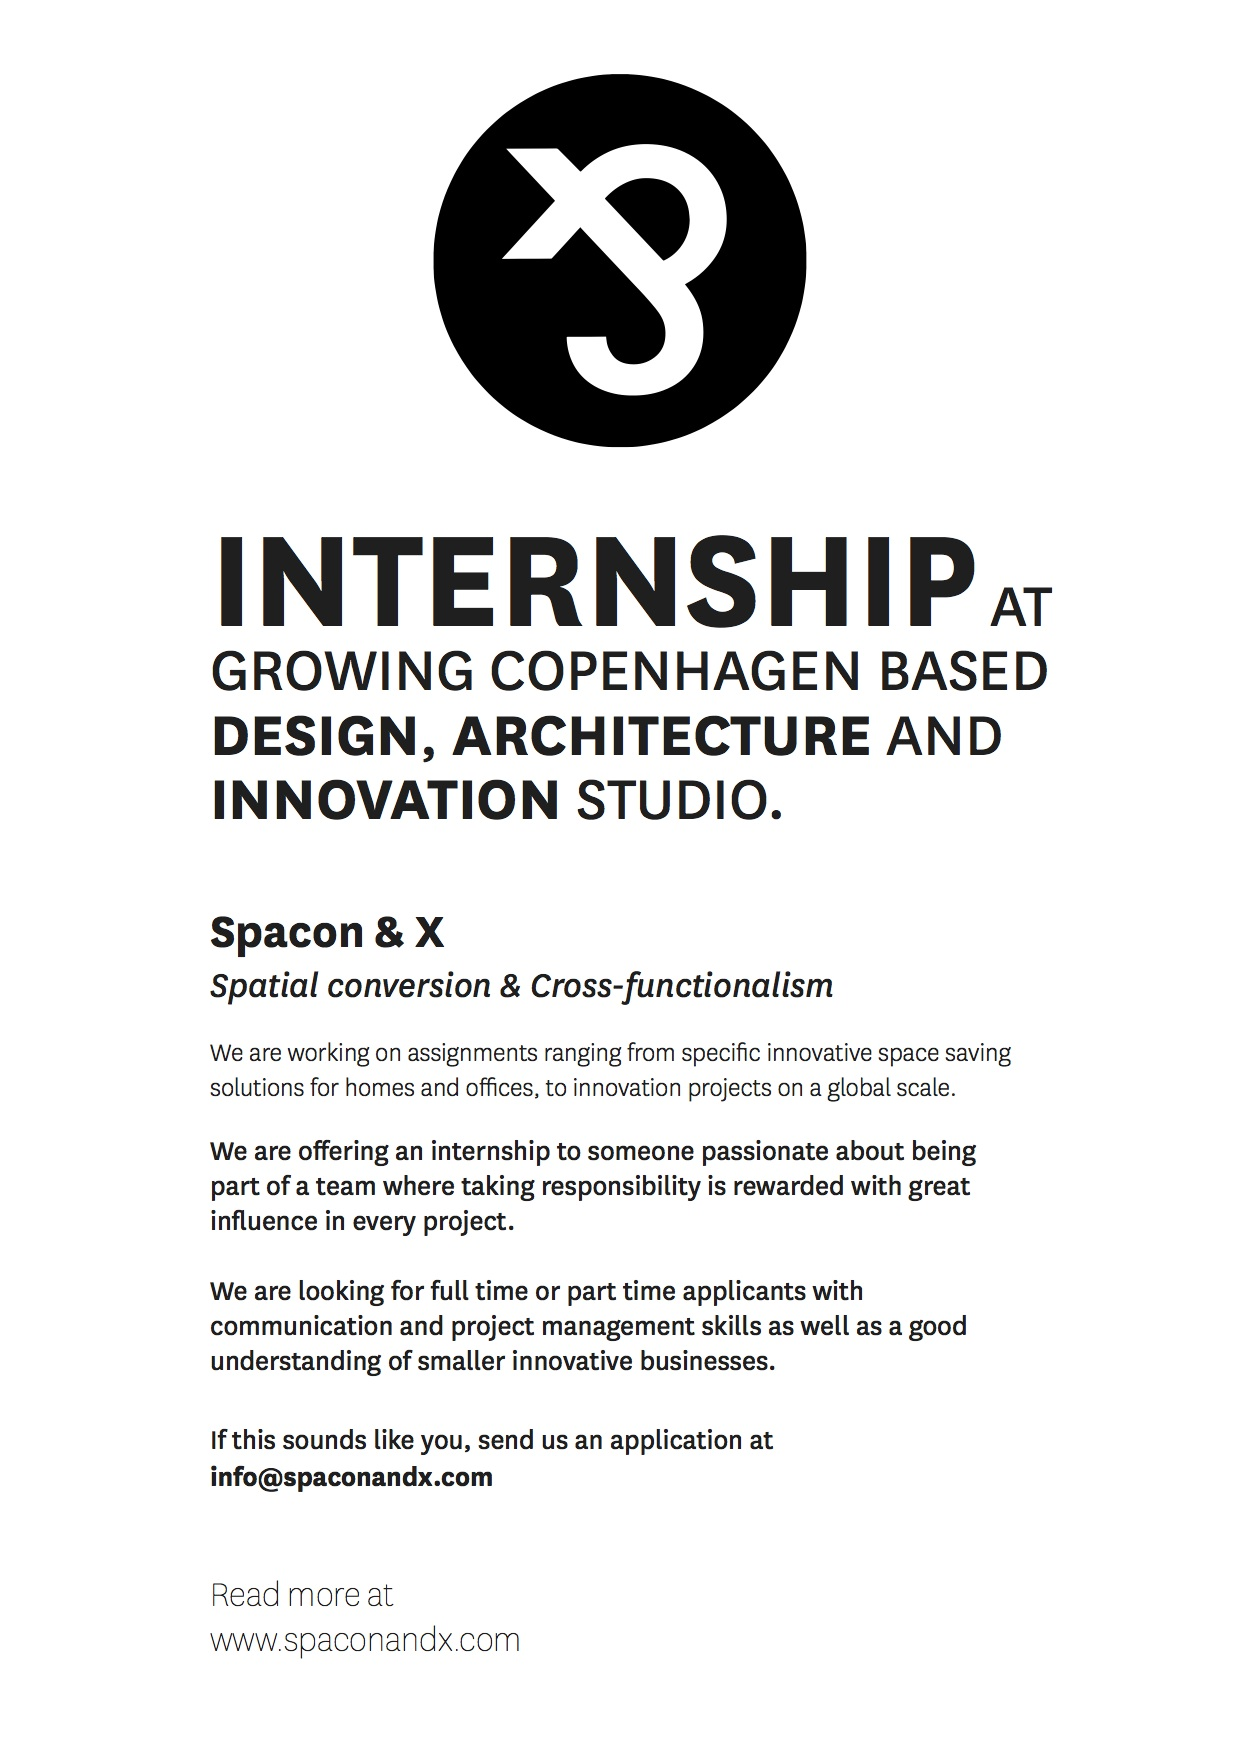 spacon_communication_internship